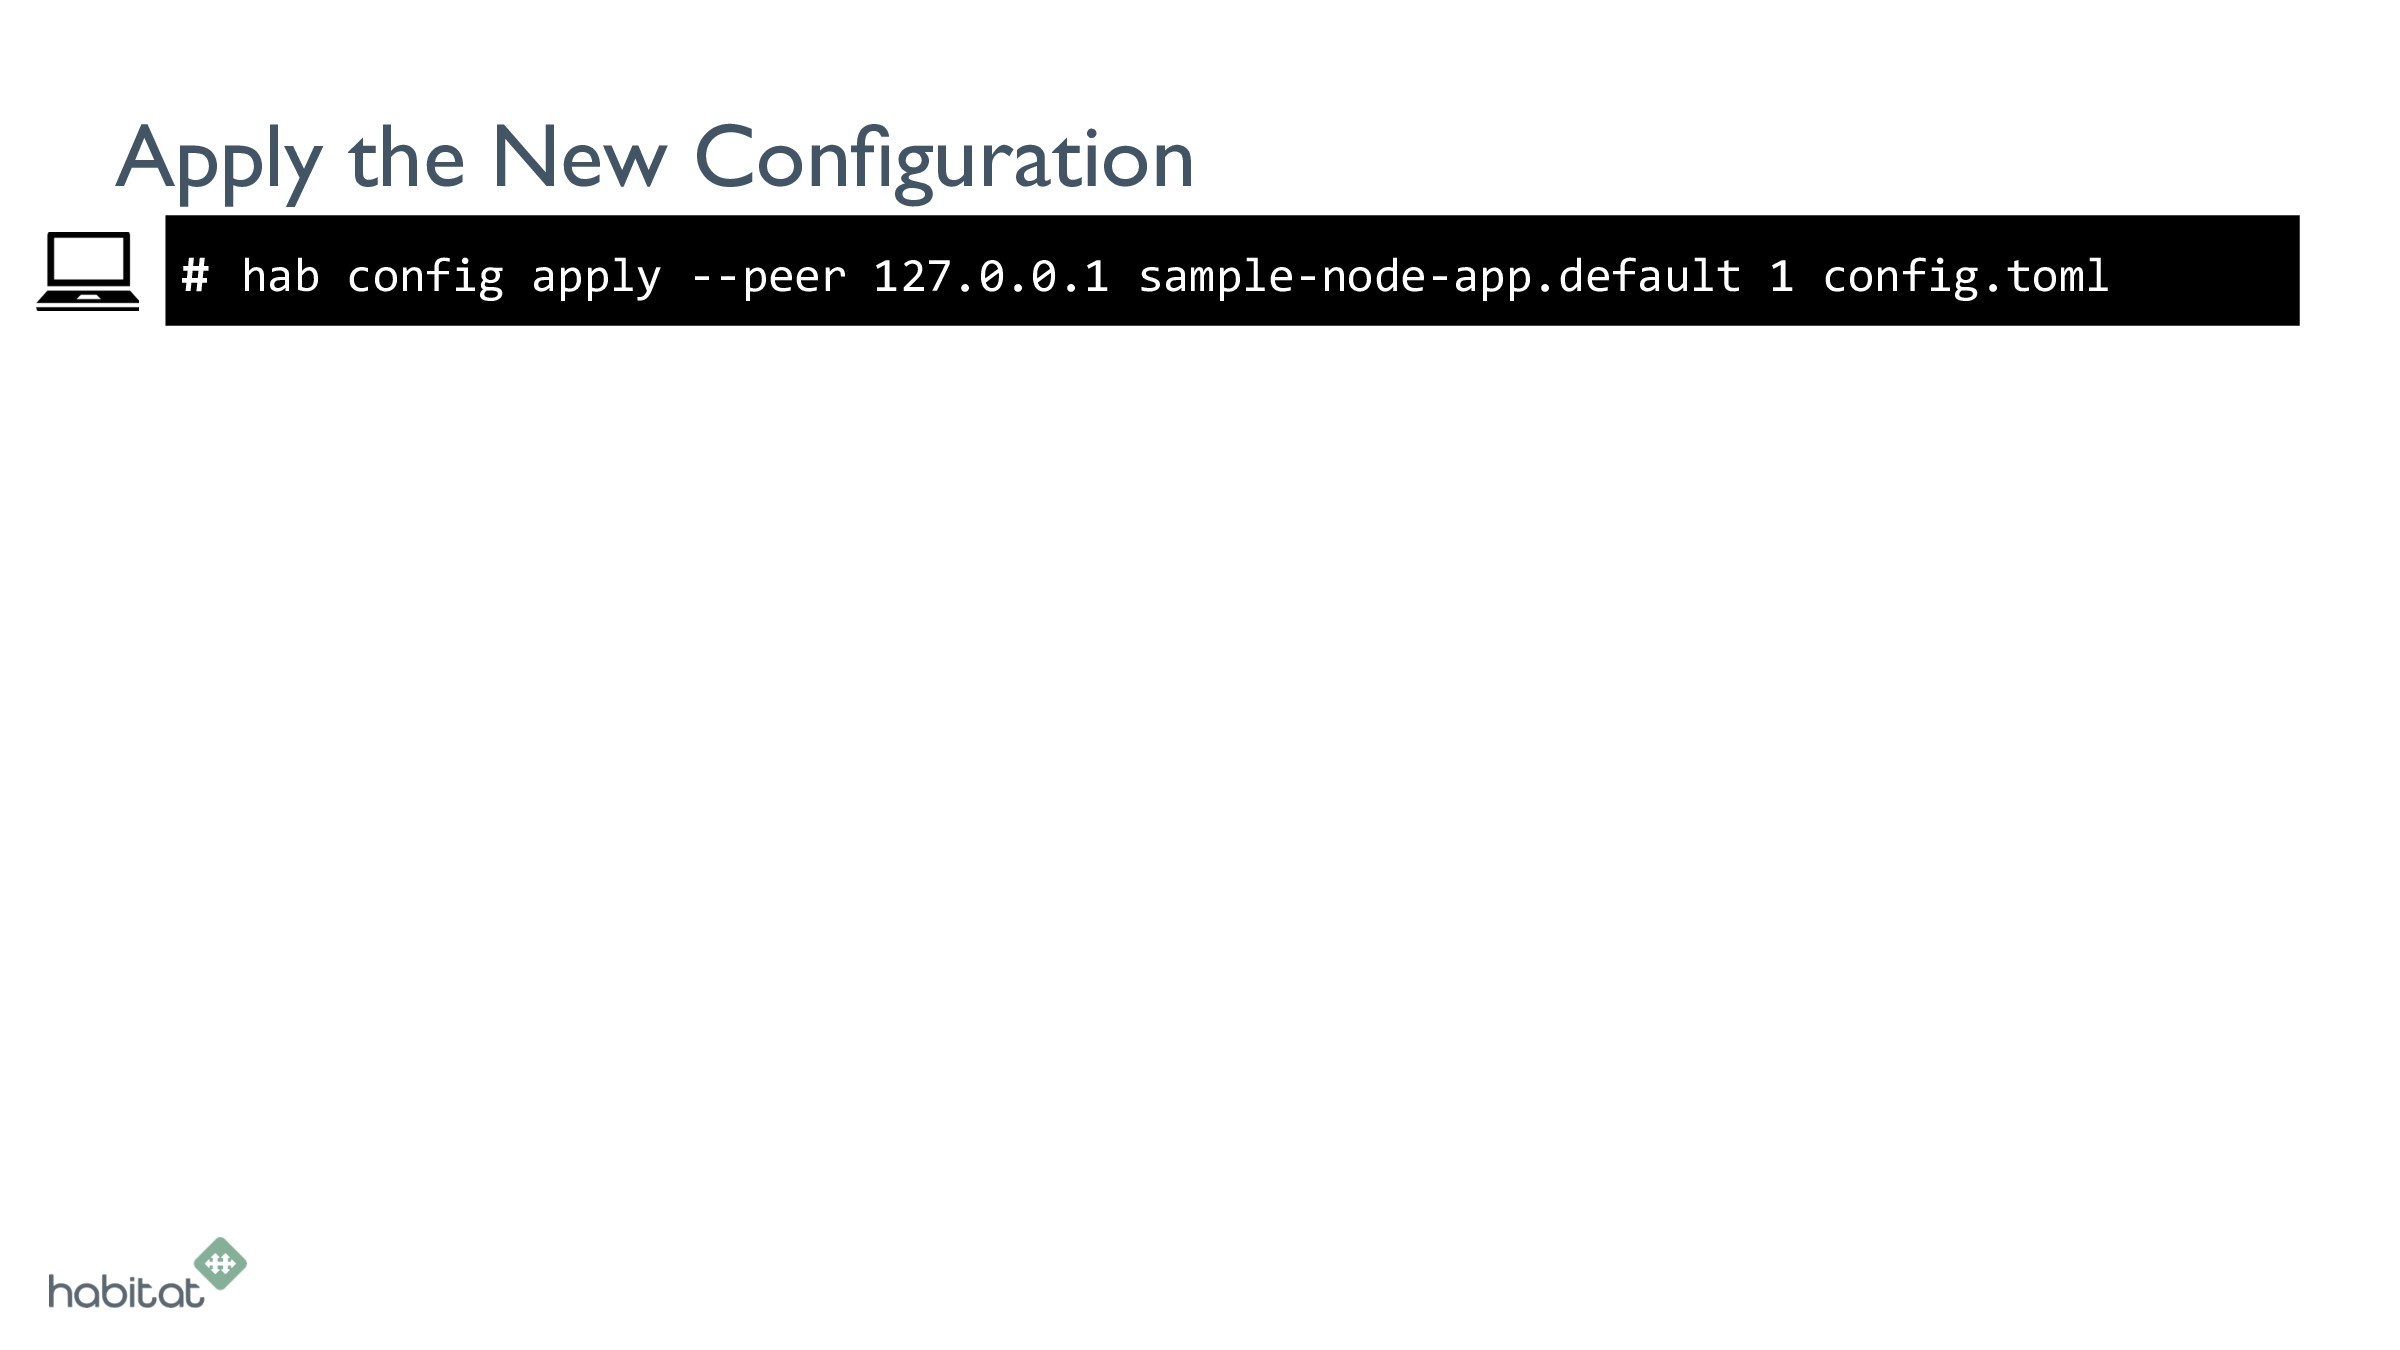 # Apply the New Configuration hab config apply -...